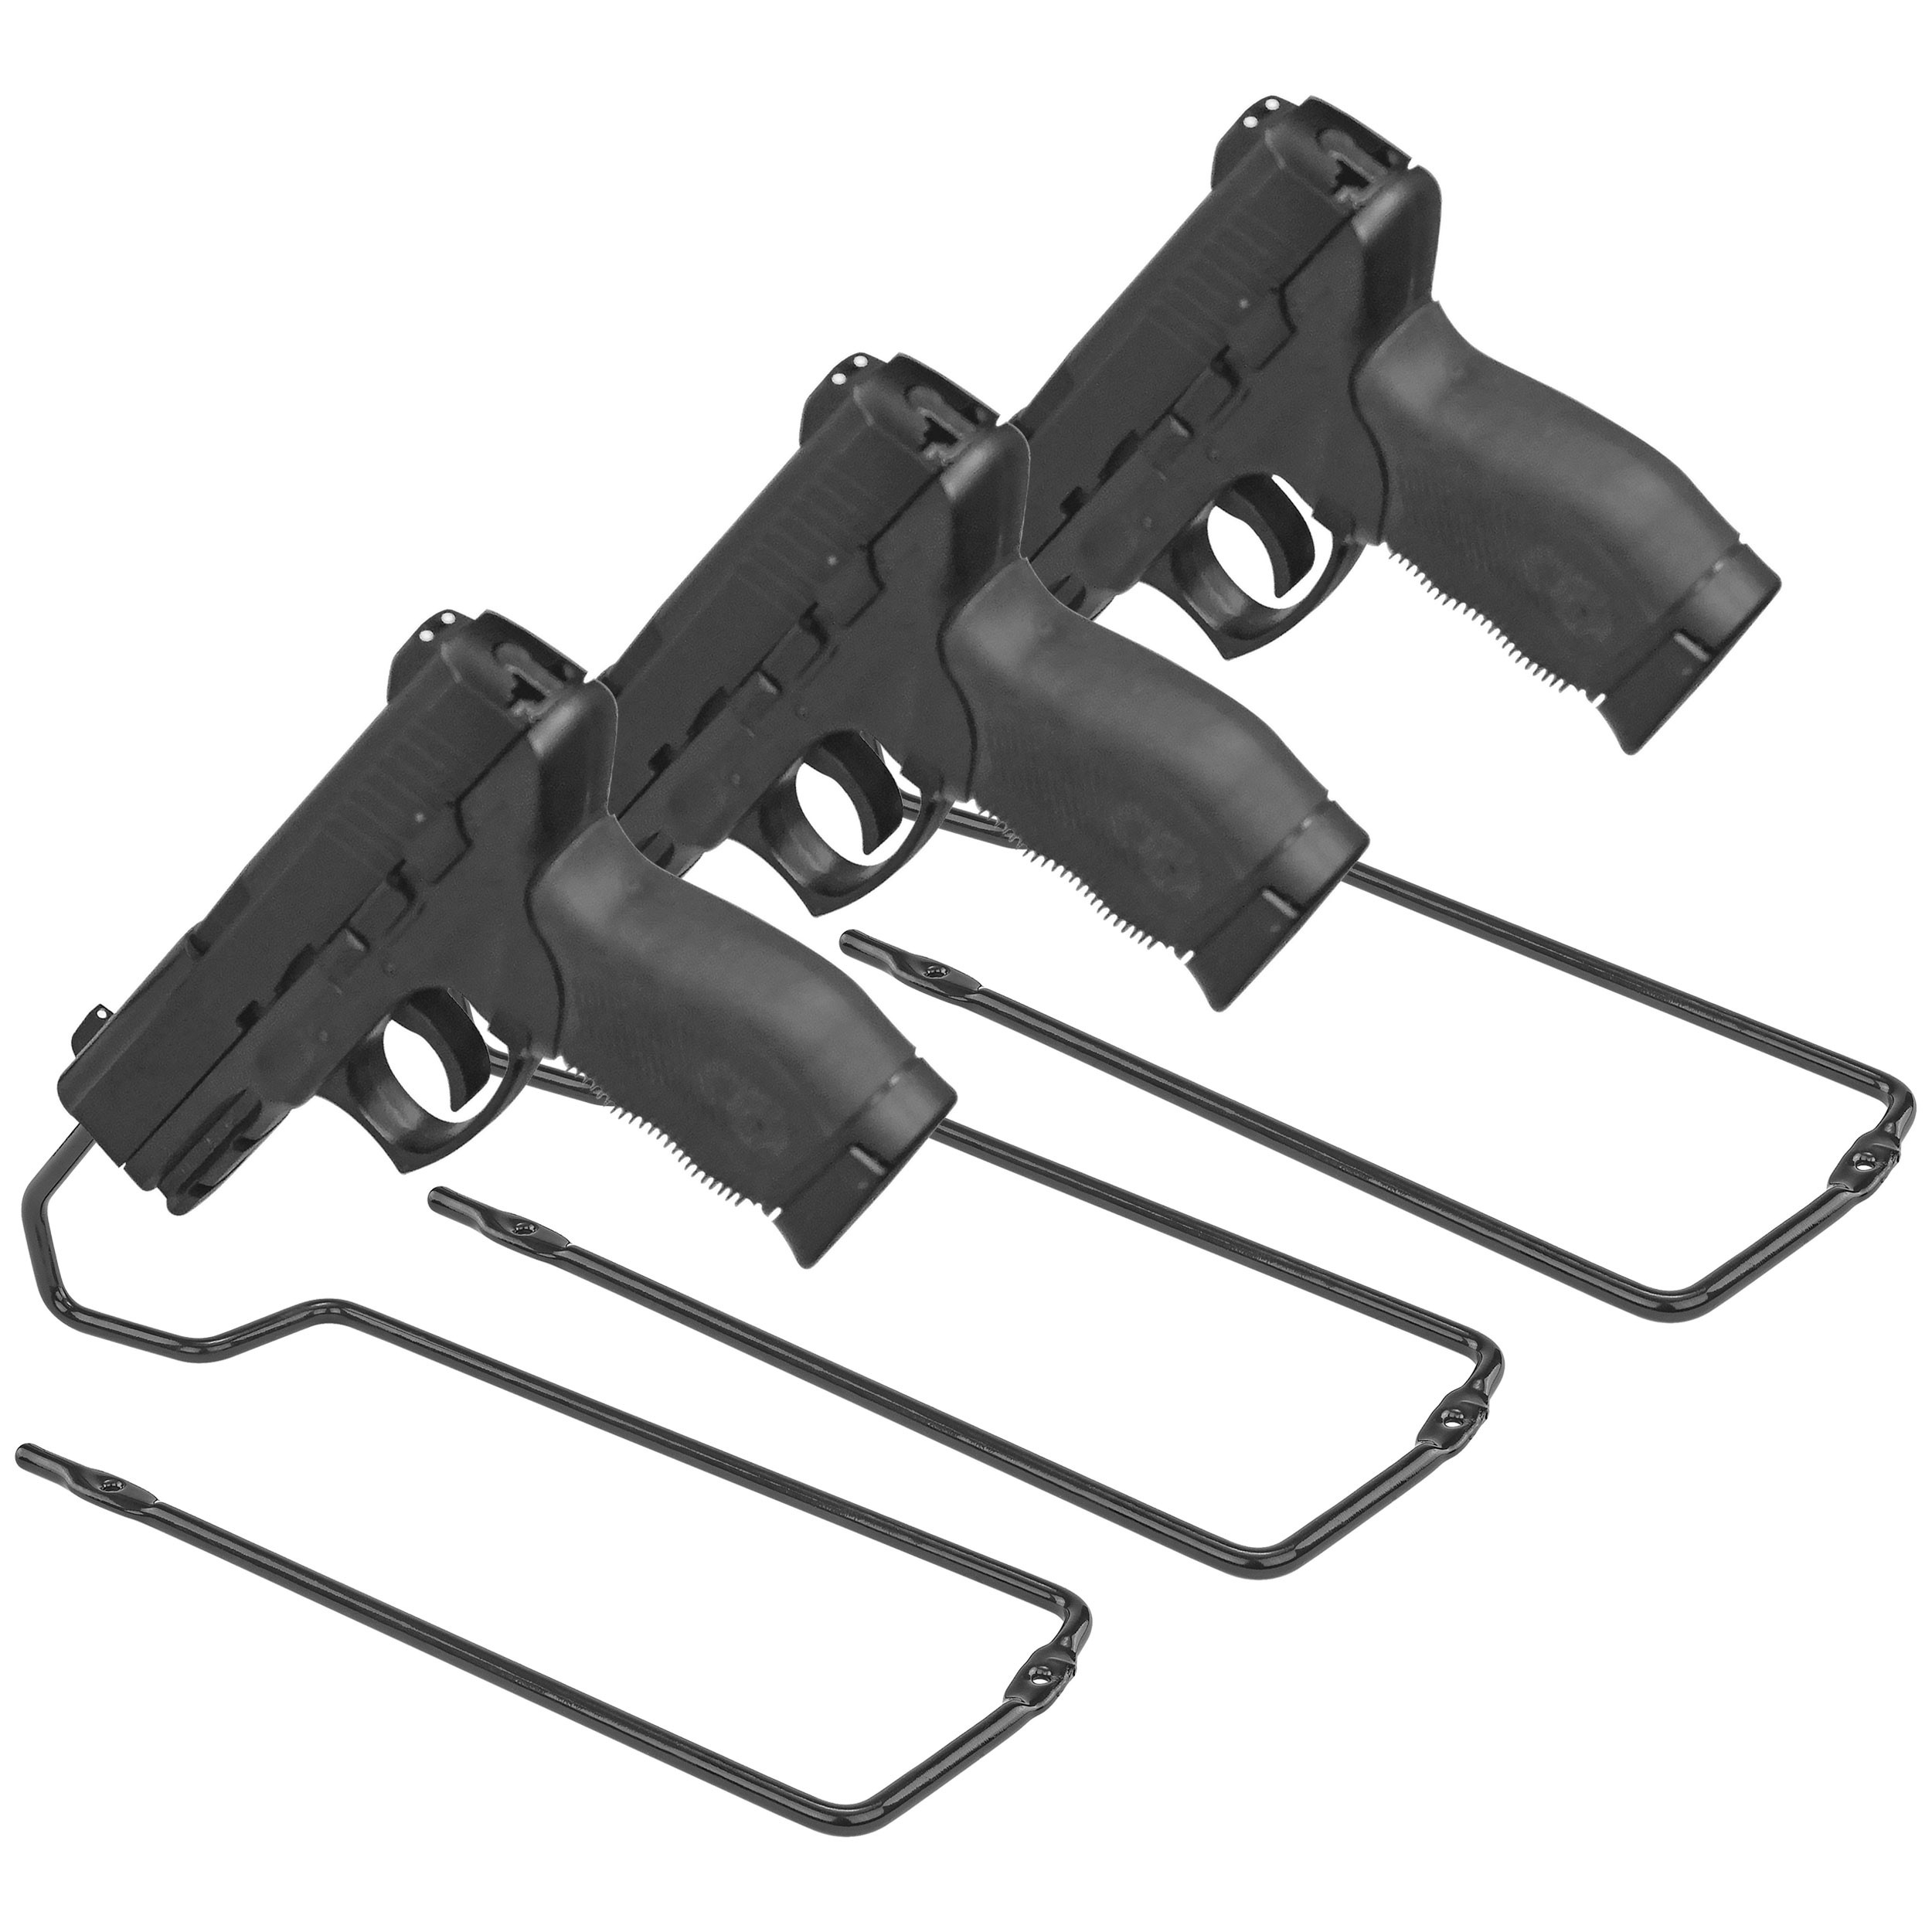 BOOMSTICK Gun Accessories Stand Style Vinyl Coated Metal Handgun Pistol Rack (Pack of 3)